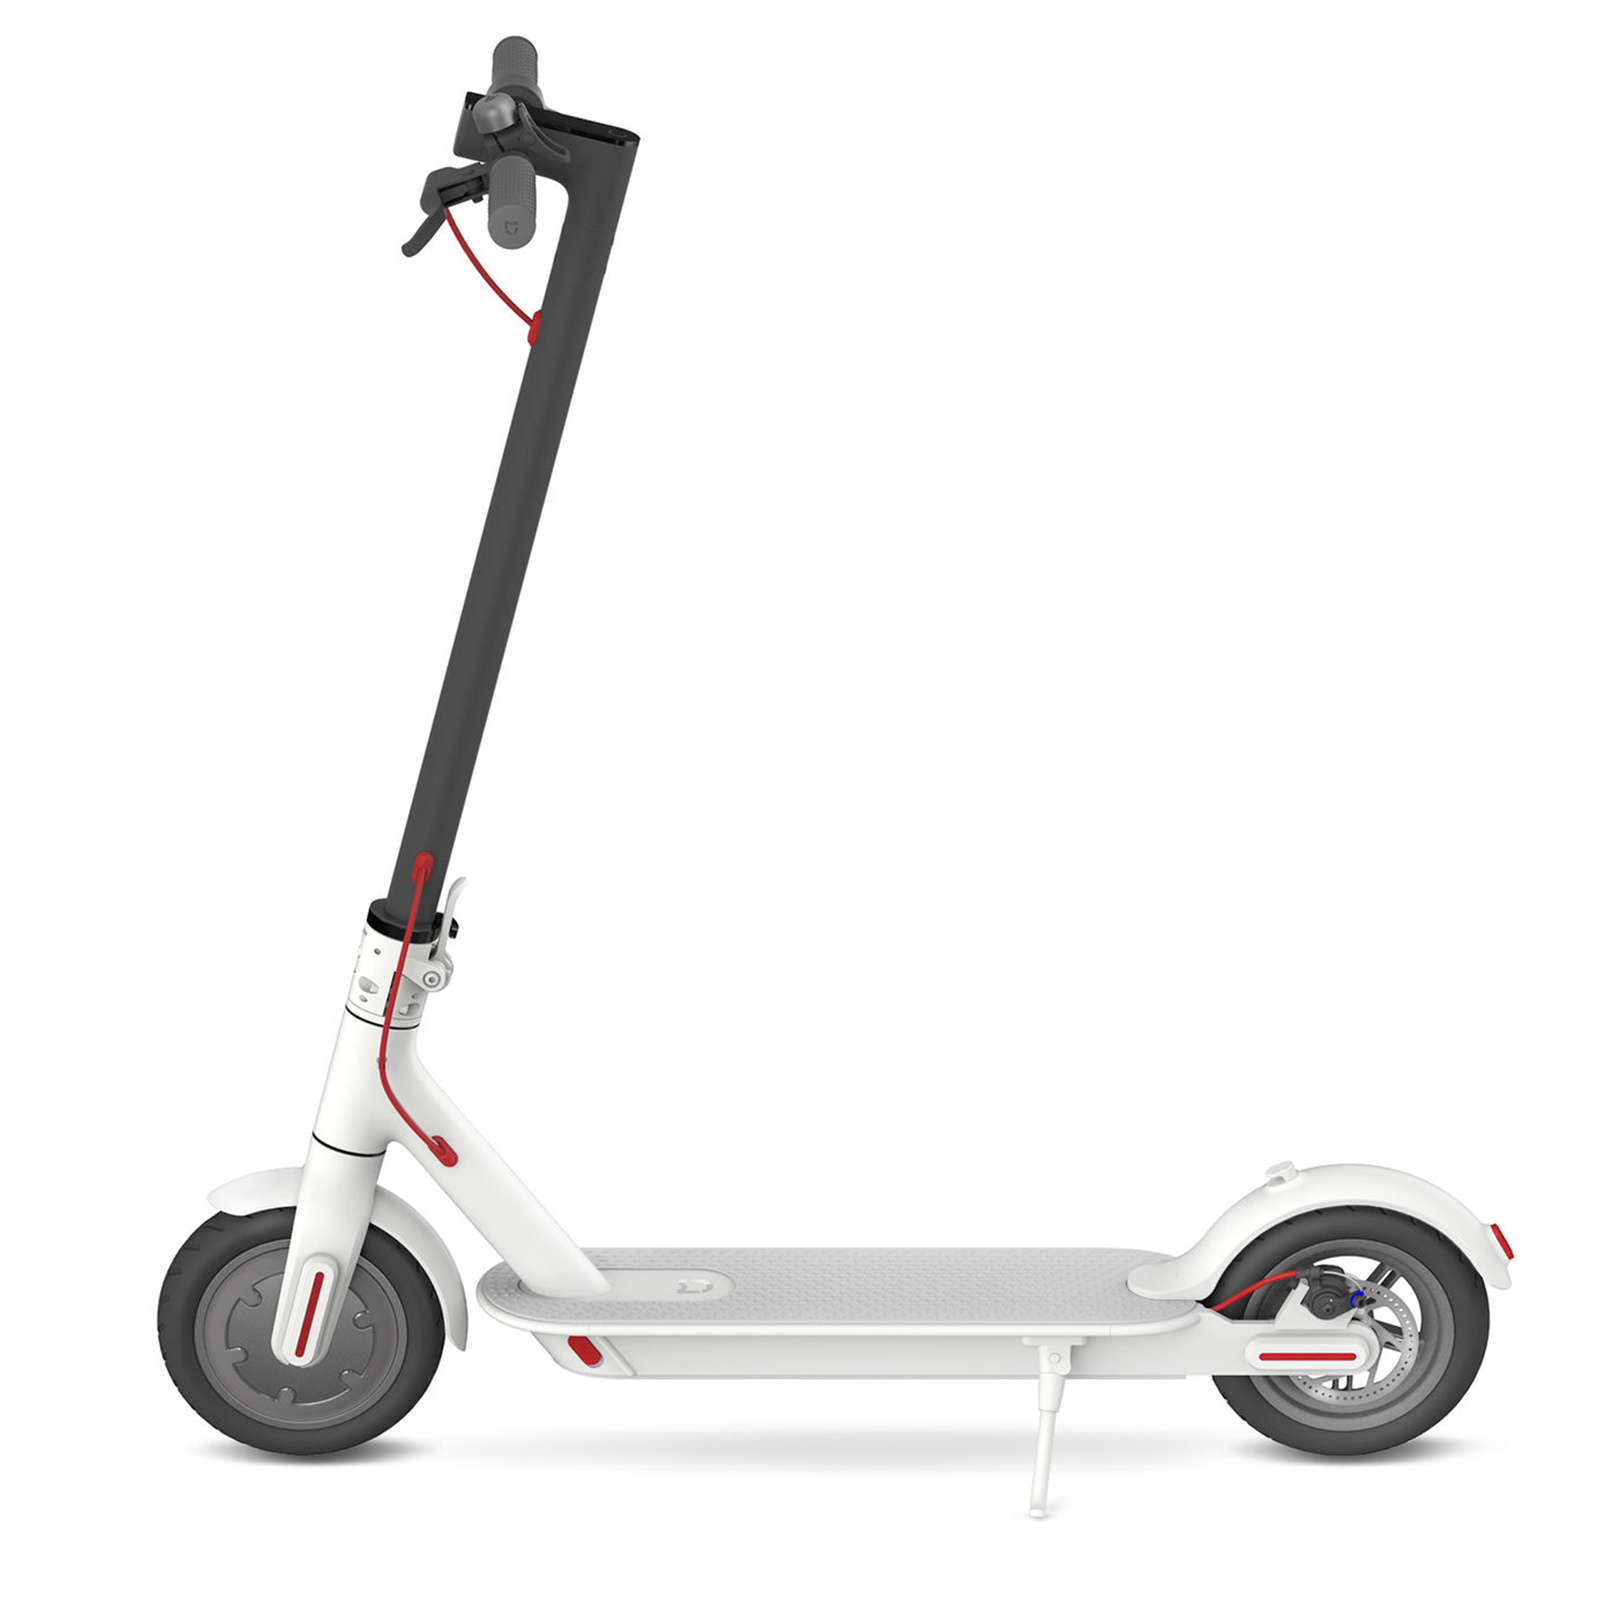 Modified Electric Scooters Faq Parallel Series Wiring How To